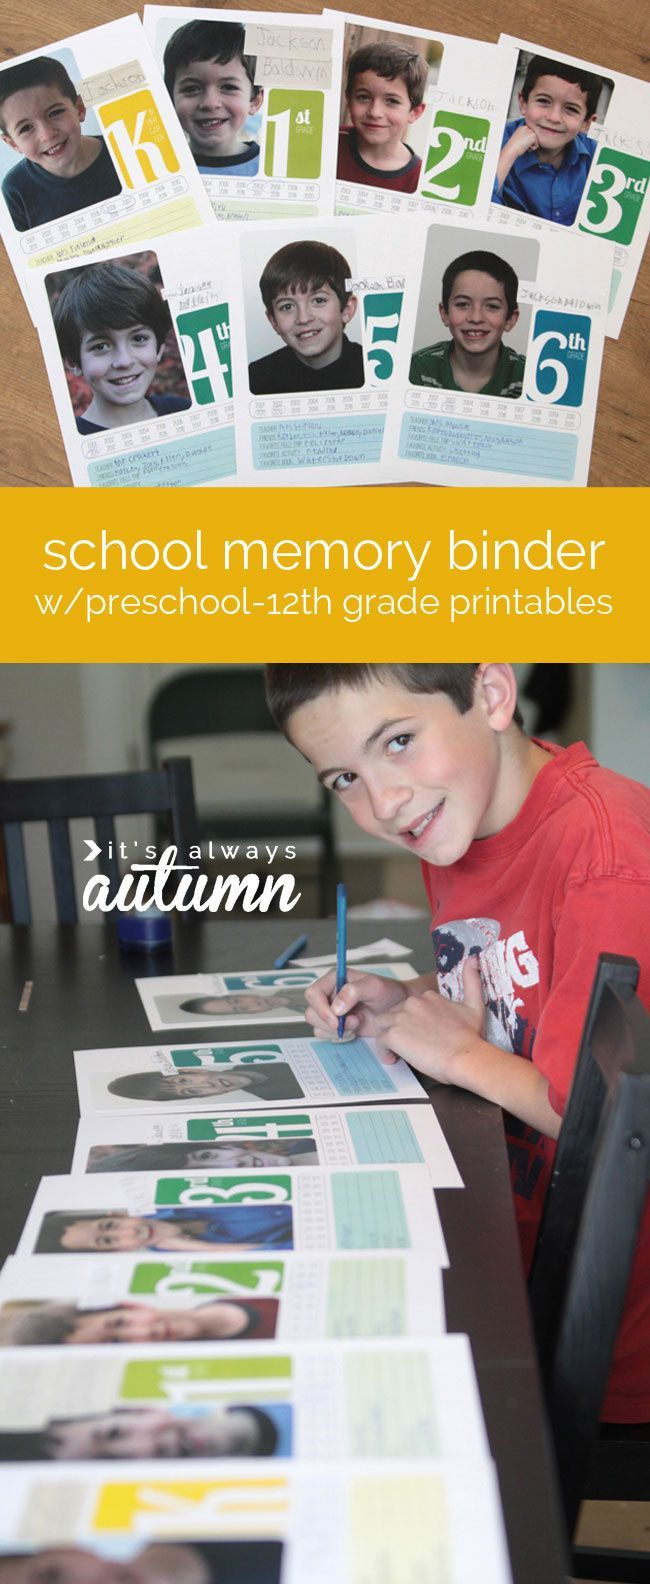 How to make scrapbook binder - Great Printables To Make A School Memory Binder To Organize Papers And Pictures From Preschool Through